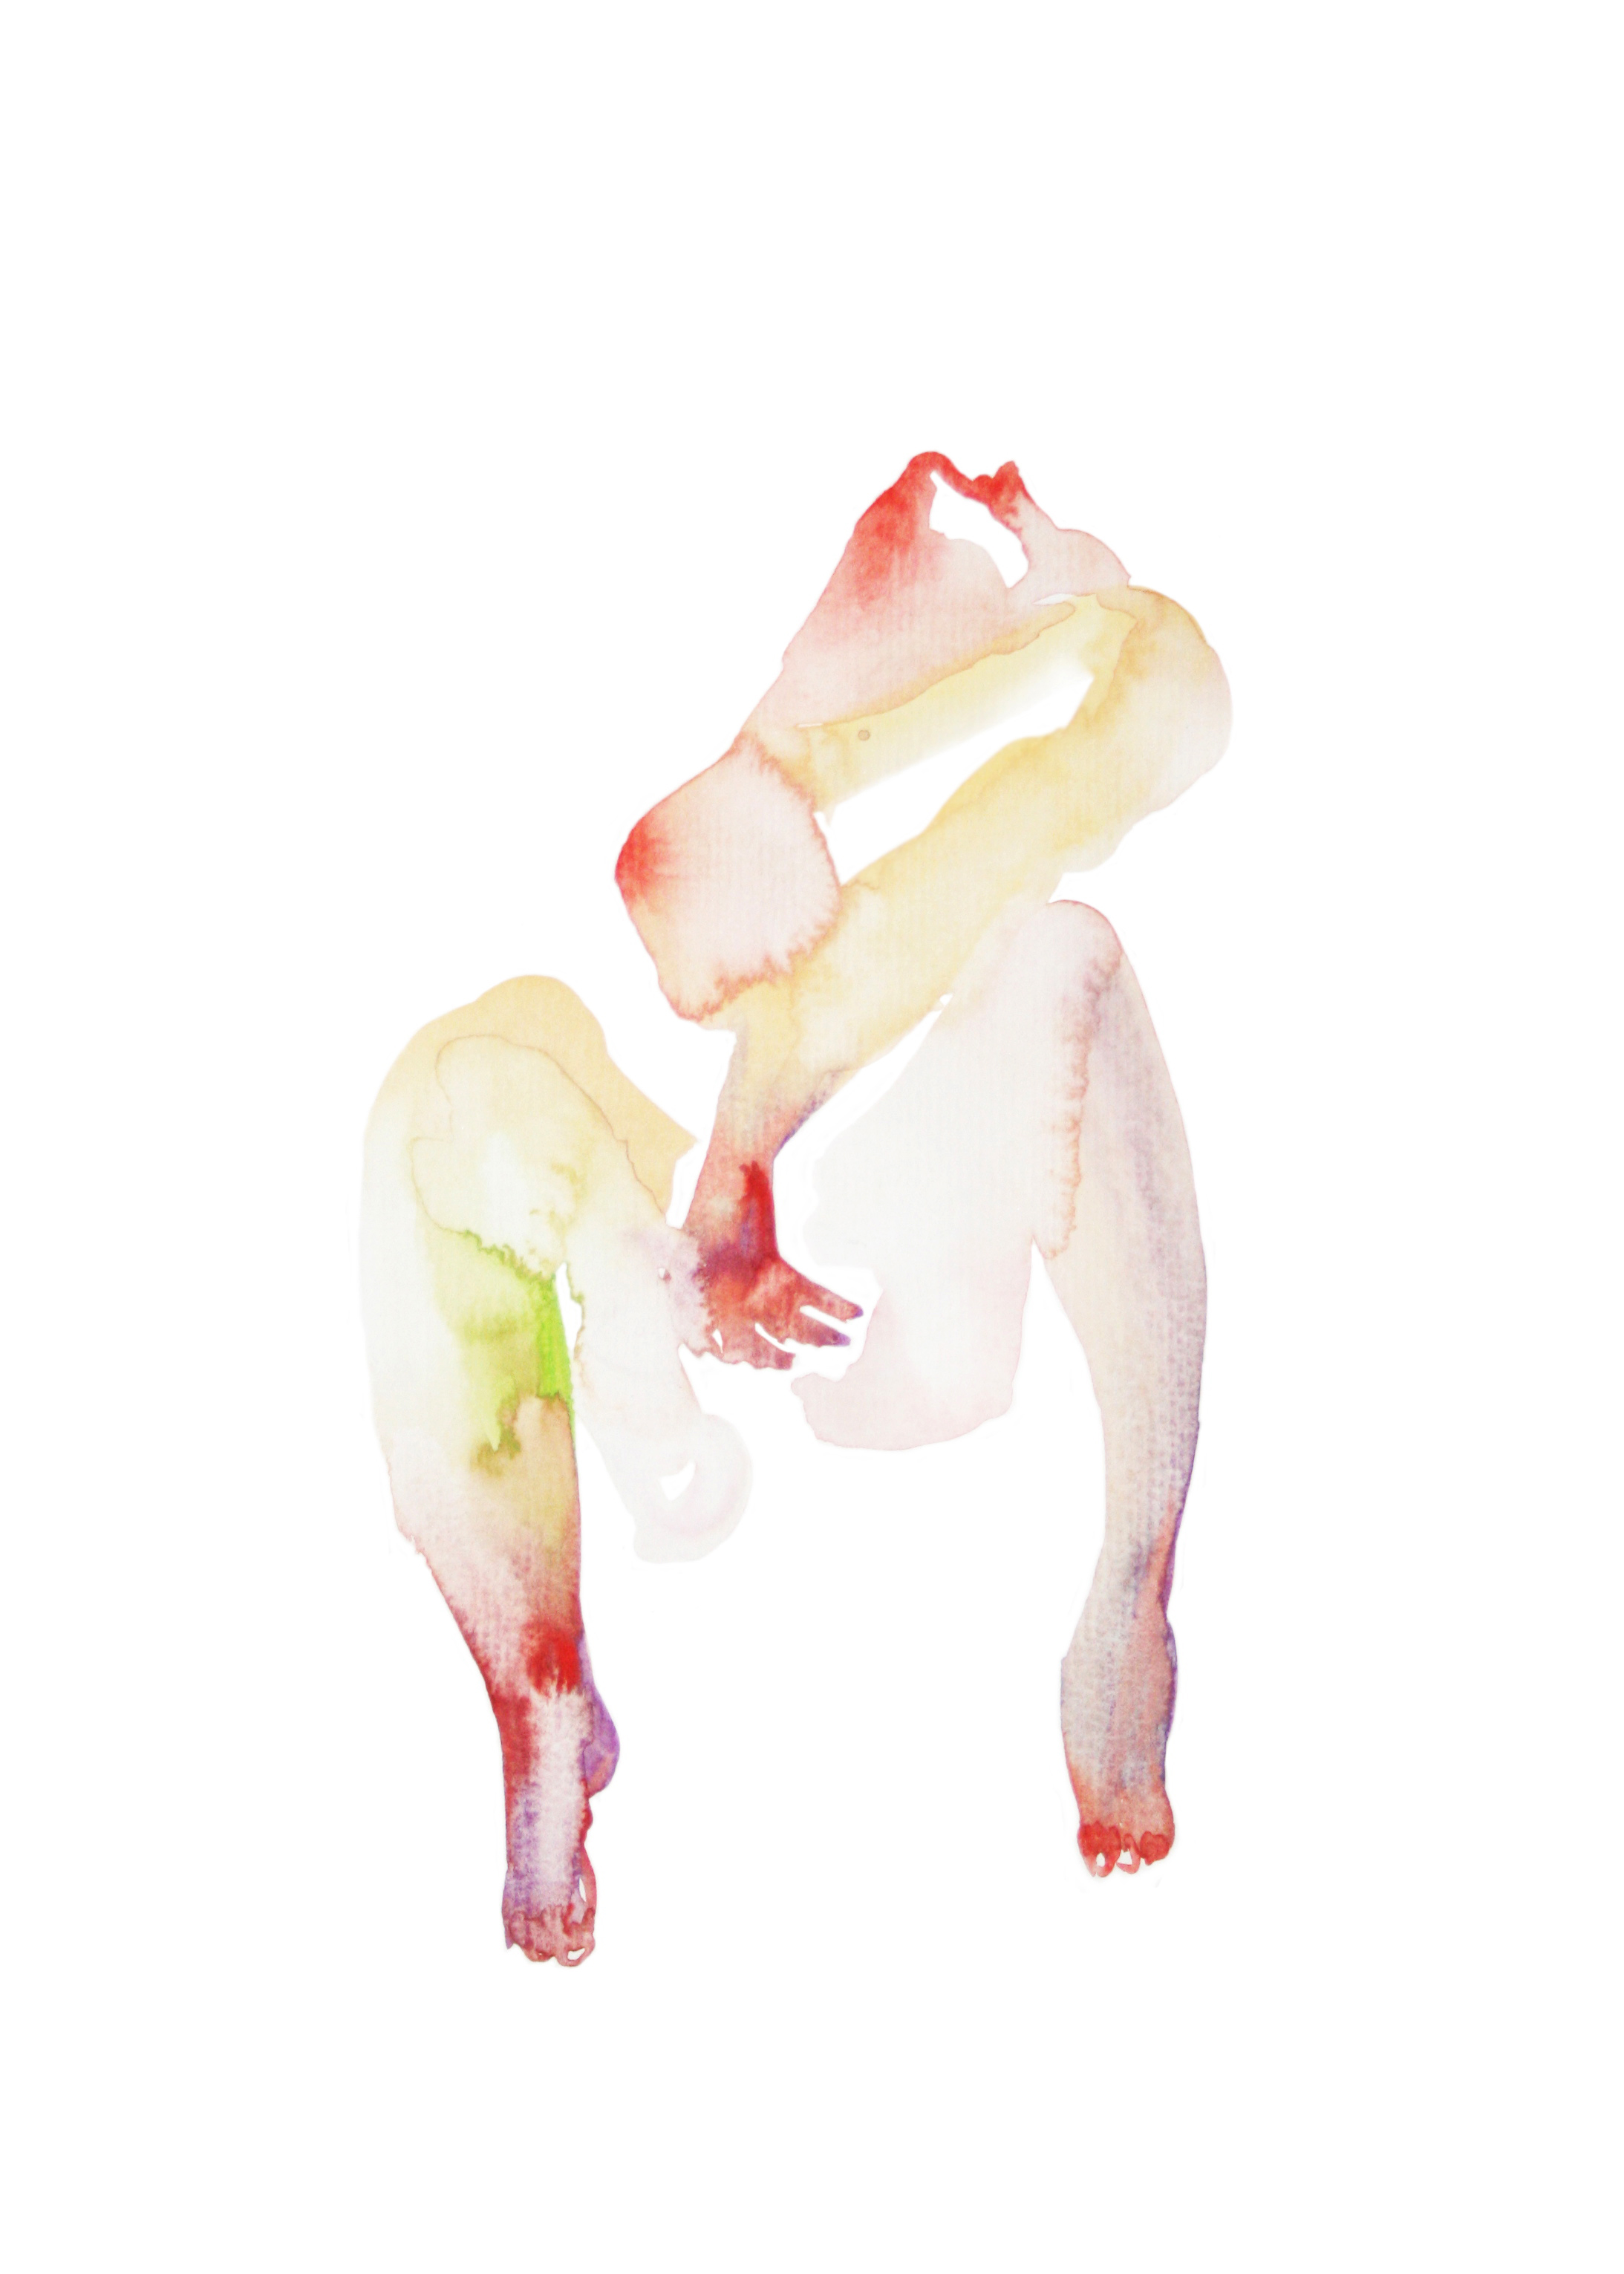 Untitled body  , 2012, watercolor on paper, 29x21cm